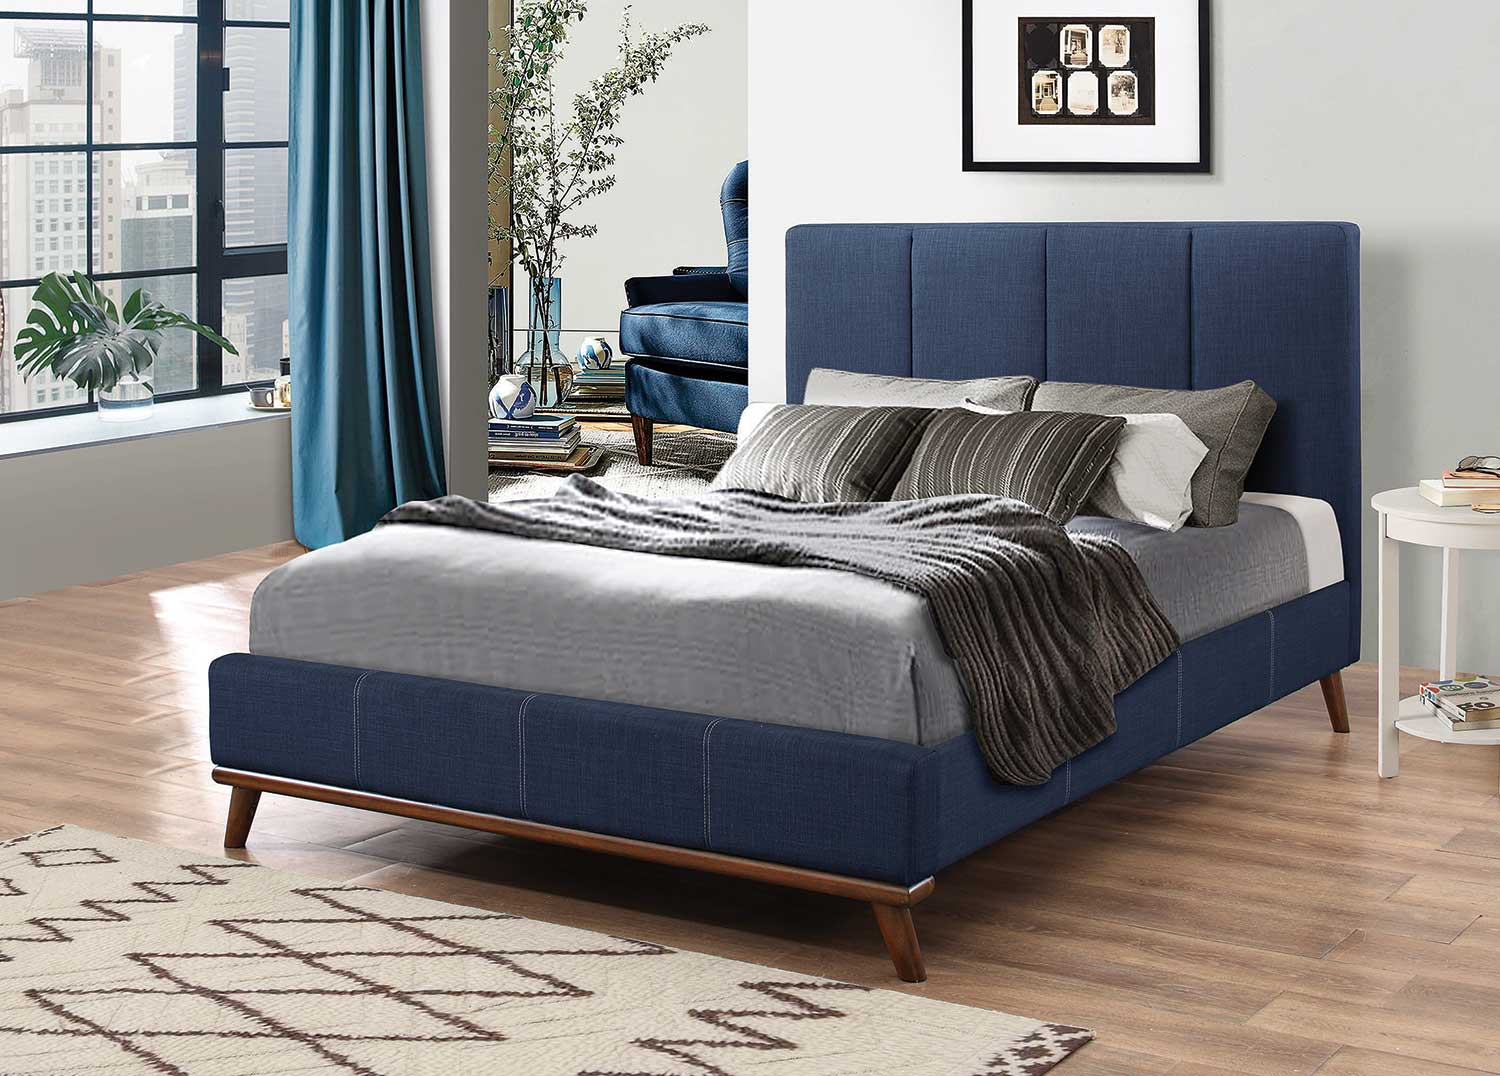 Coaster Charity Low Profile Platform Upholstered Bed - Blue Fabric